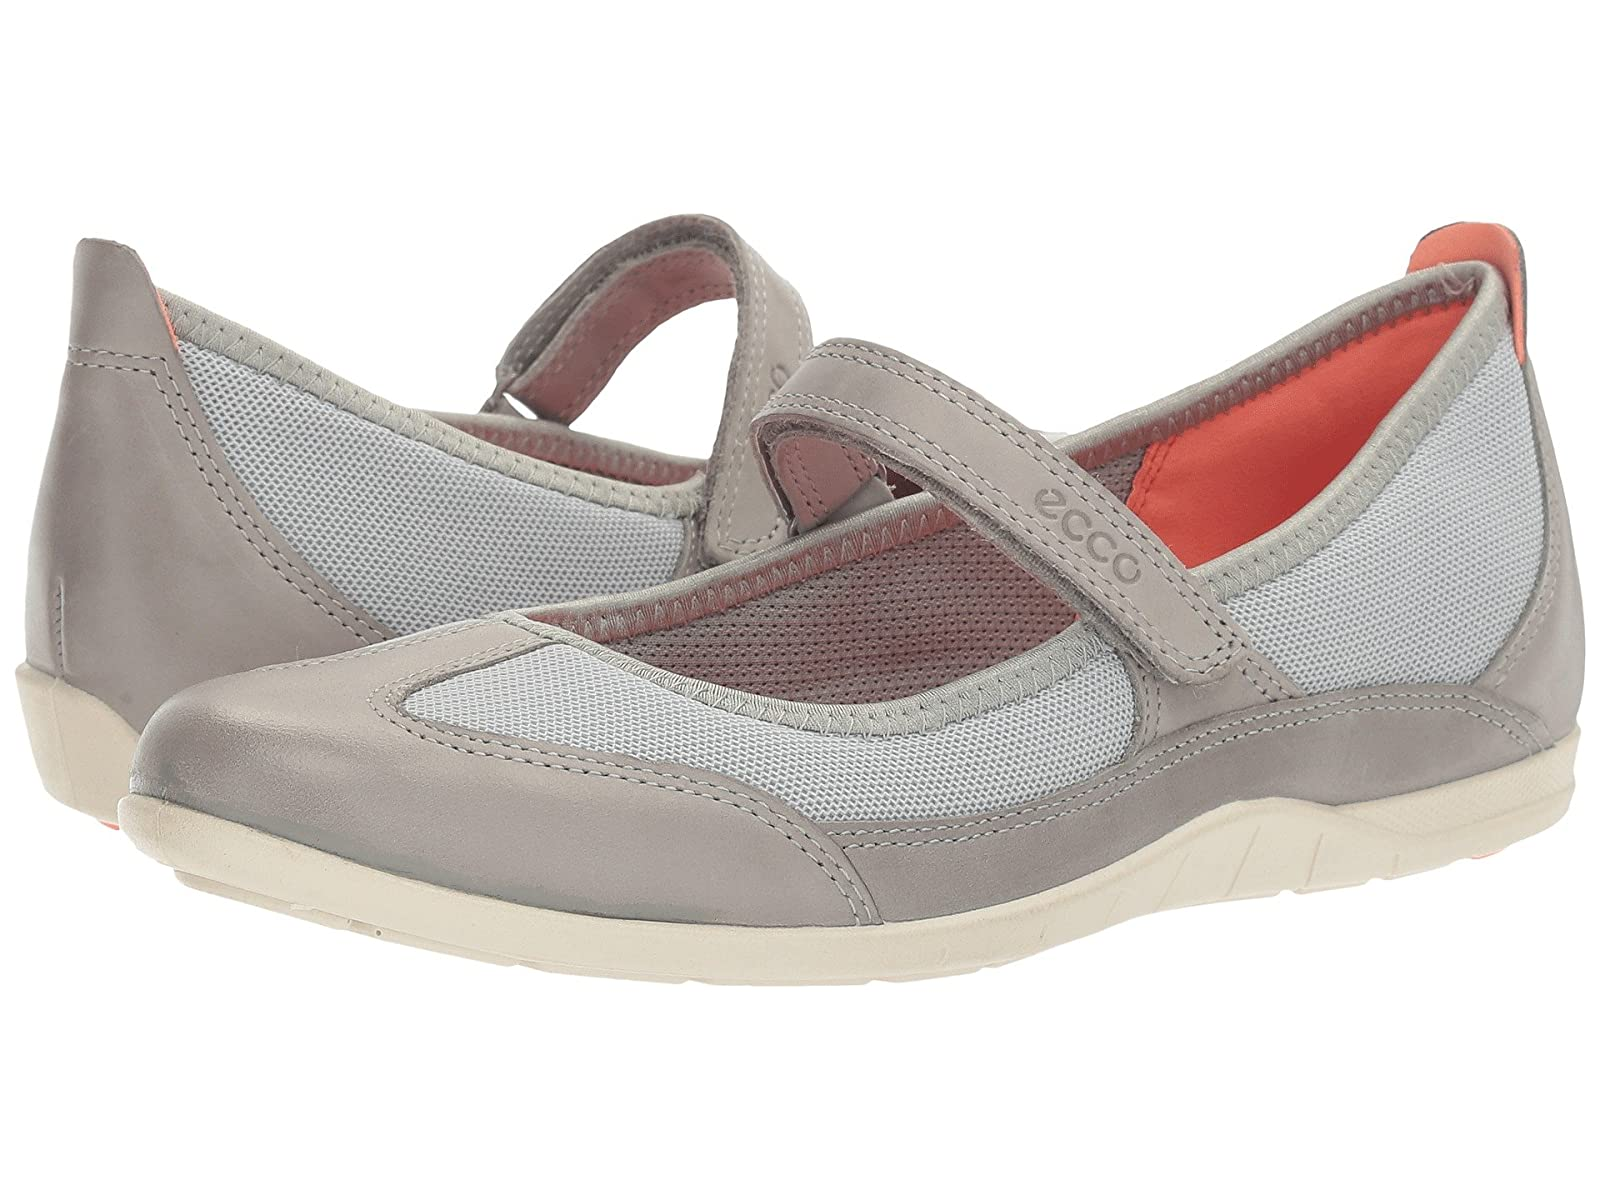 ECCO Bluma MJ SandalCheap and distinctive eye-catching shoes